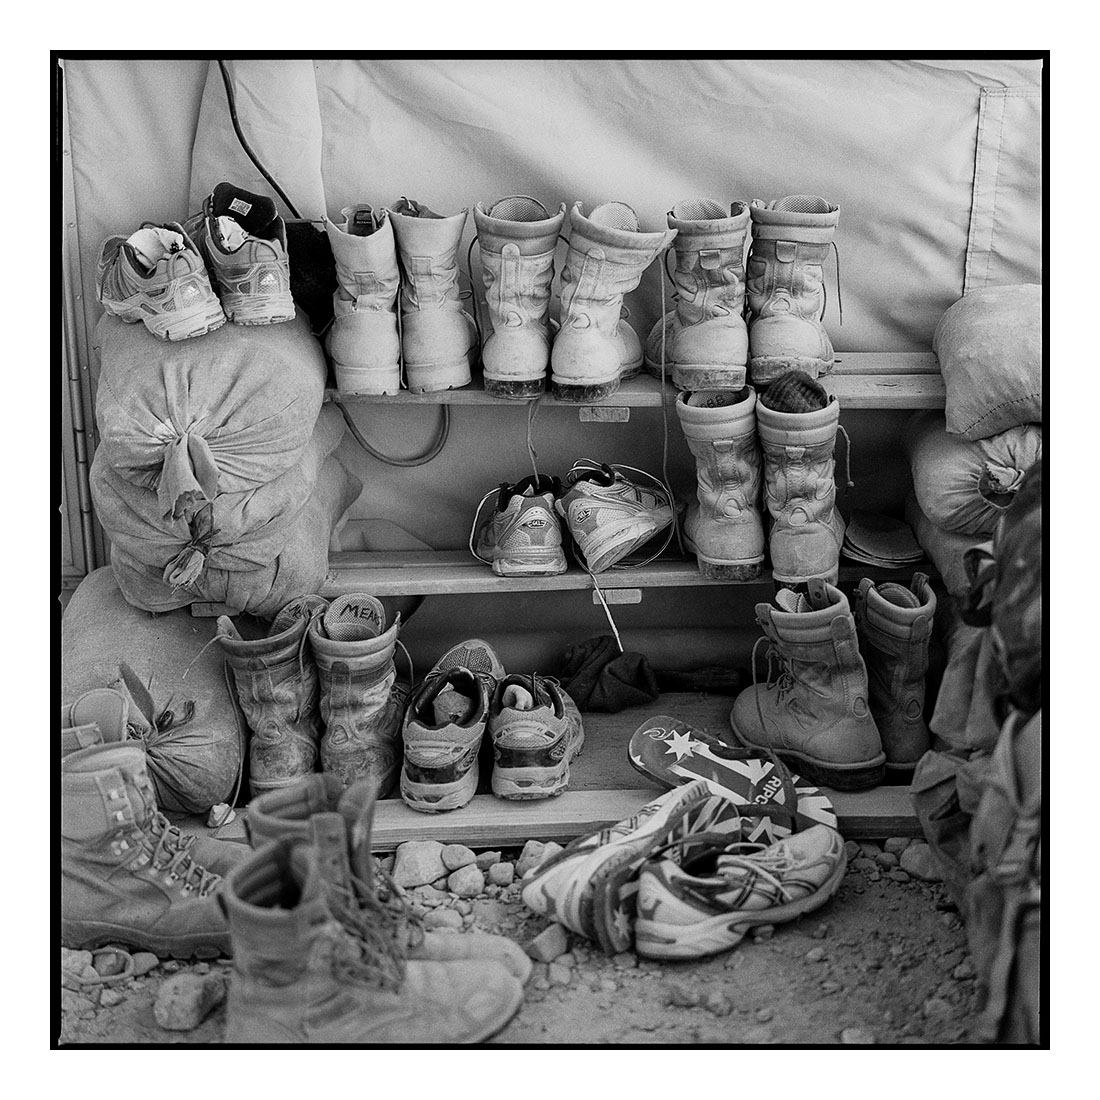 Boots   (2011) Archival pigment prints on Ilford paper 40cm x 40cm | Edition of 25 + 3 Artist Proofs 100cm x 100cm | Edition of 10 + 3 Artist Proofs